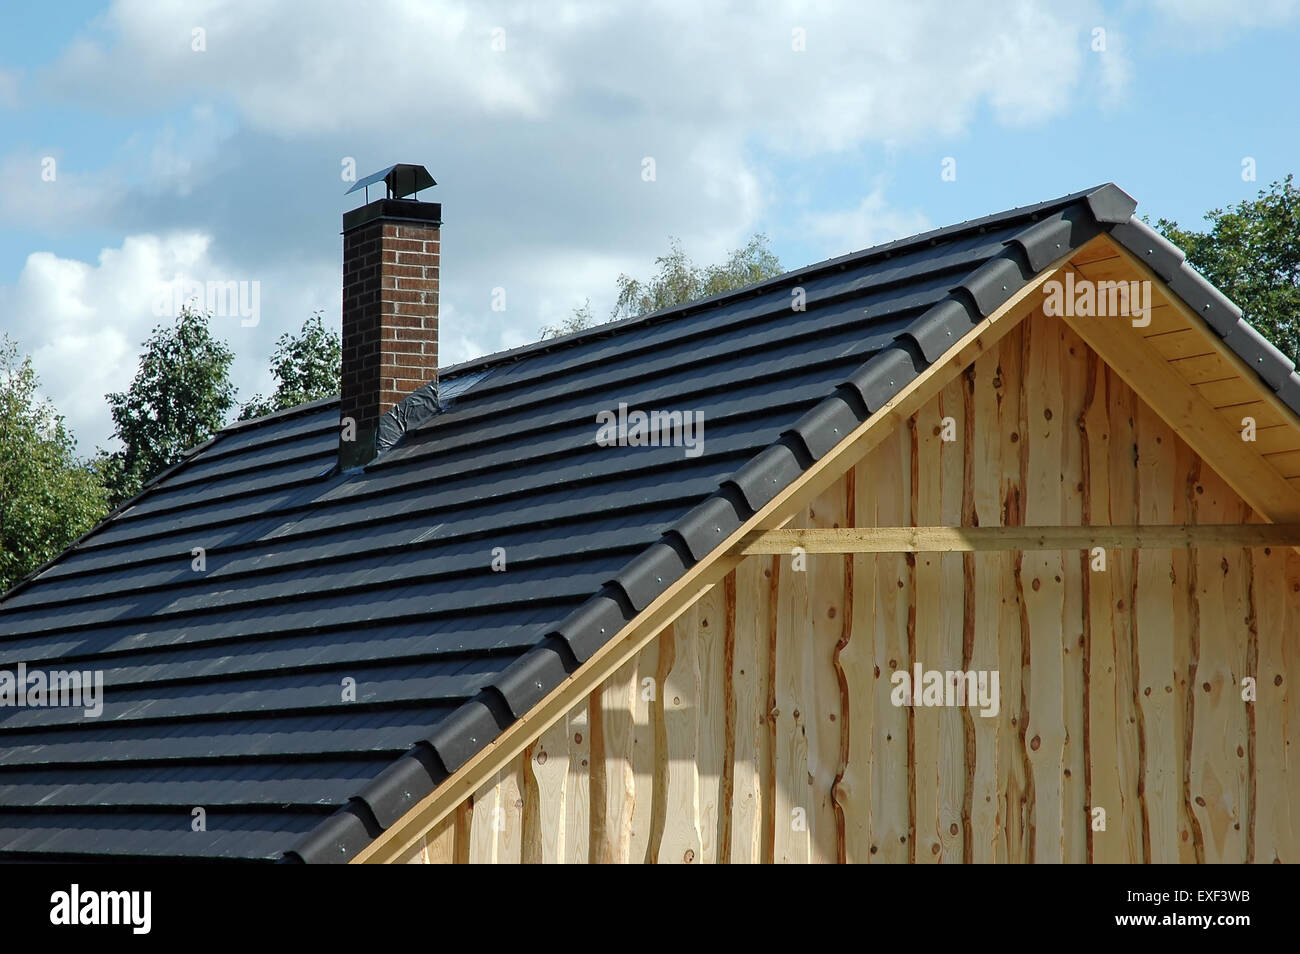 roofing stockfotos roofing bilder alamy. Black Bedroom Furniture Sets. Home Design Ideas